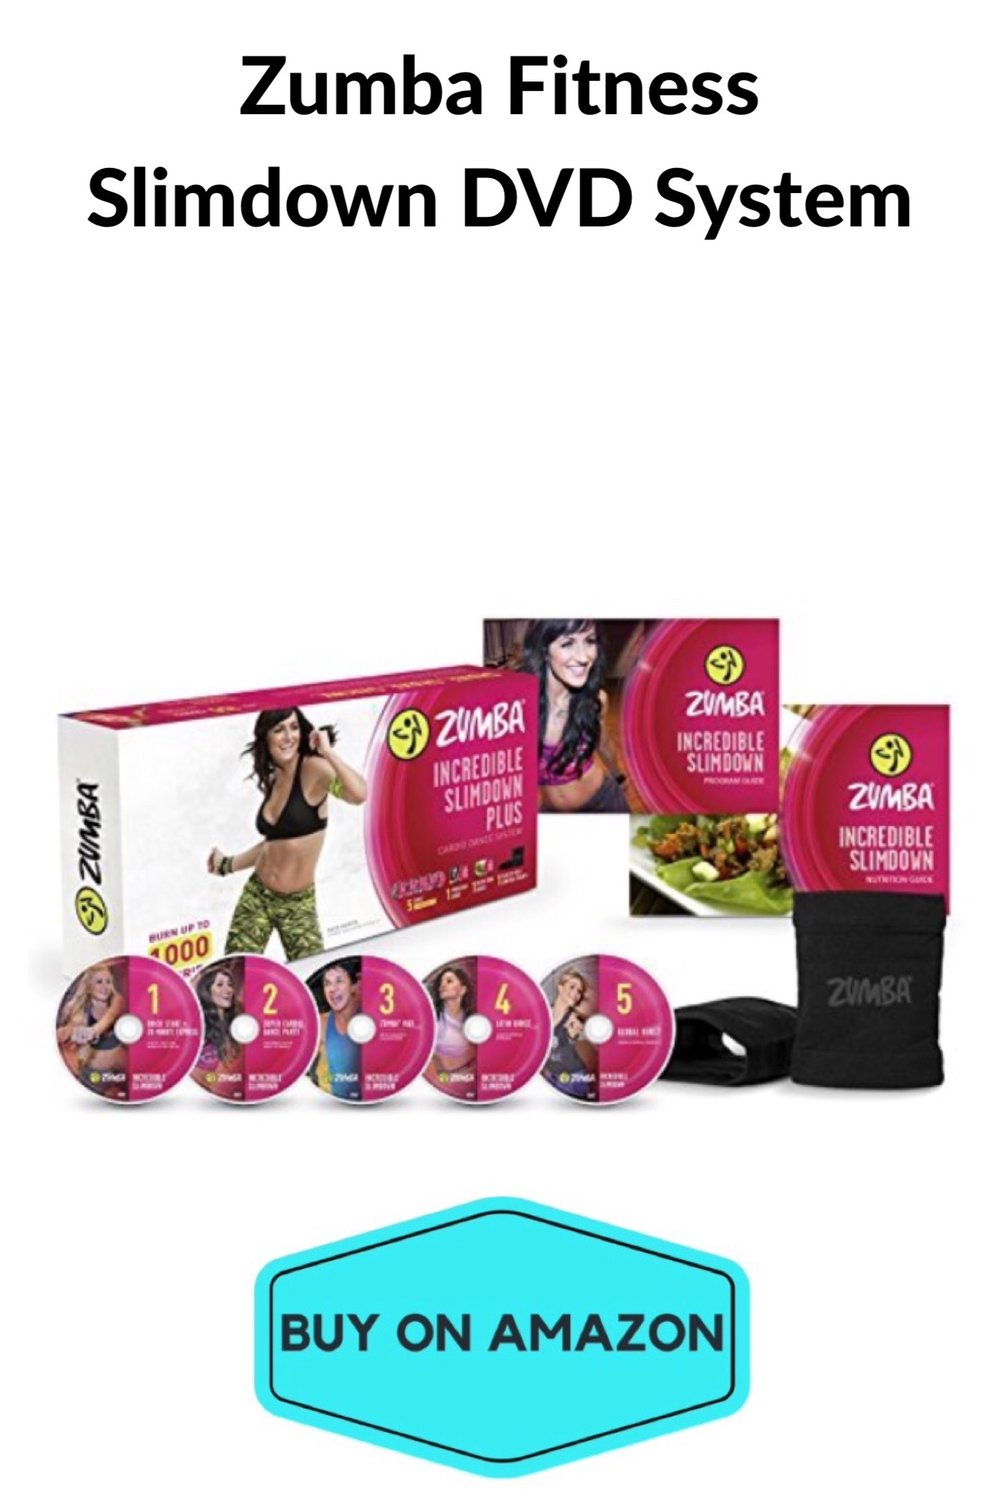 Zumba Fitness Slimdown DVD Set